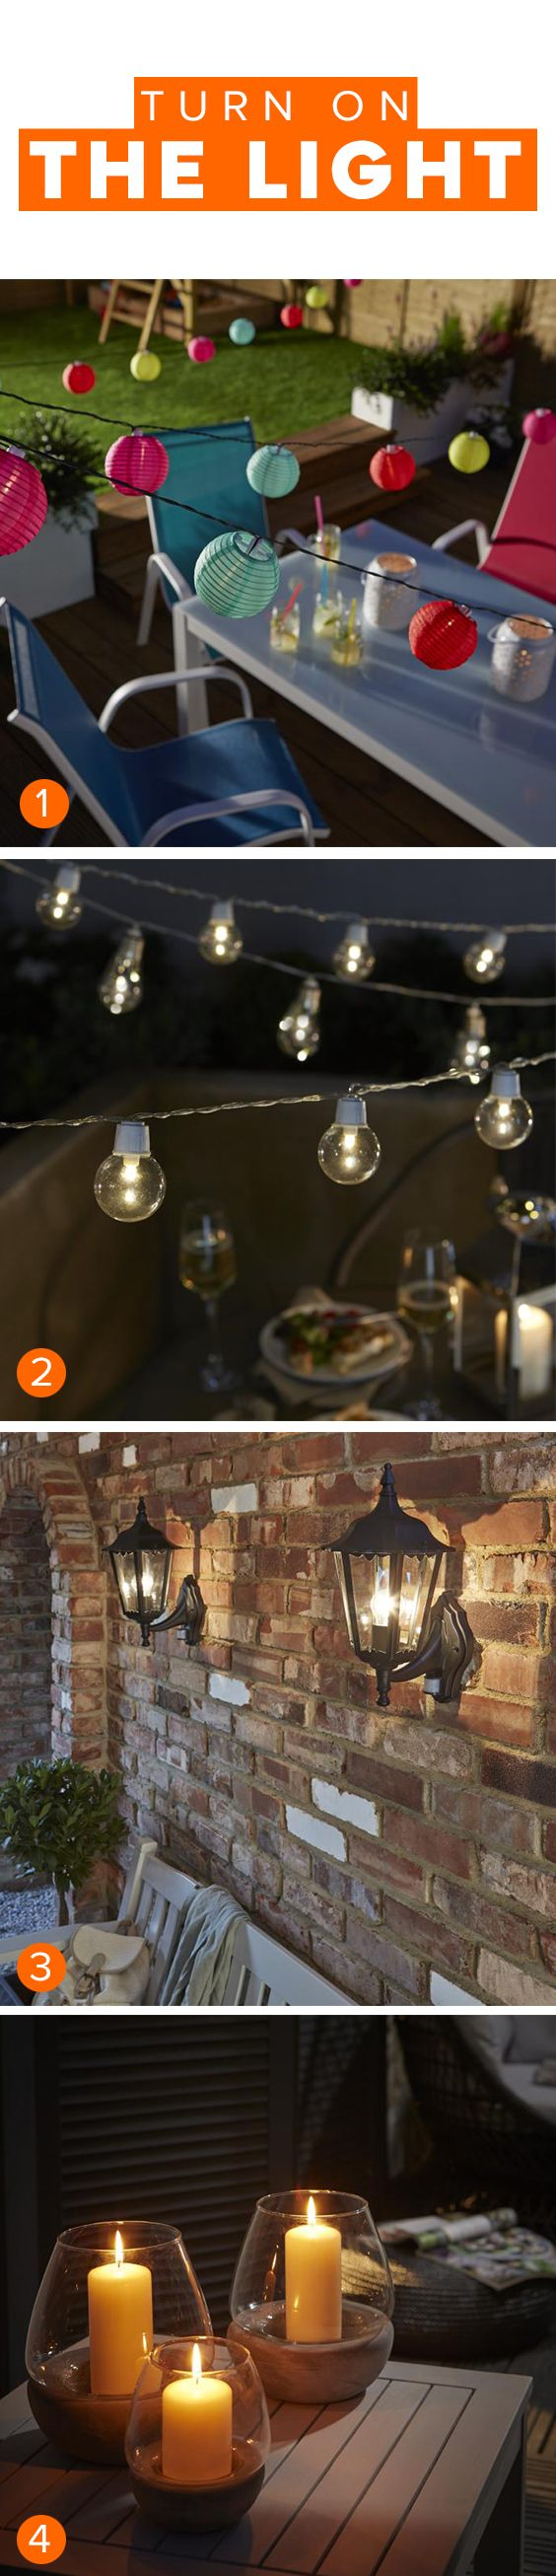 Bright ideas for outdoor lighting:    1. A string of colourful mini shades adds a playful element    2. String up twinkly solar or LED lights for a fairytale feel    3. Try wall lanterns for a soft glow and a vintage look    4. Chunky candles look pretty in glass vases or hurricane lanterns